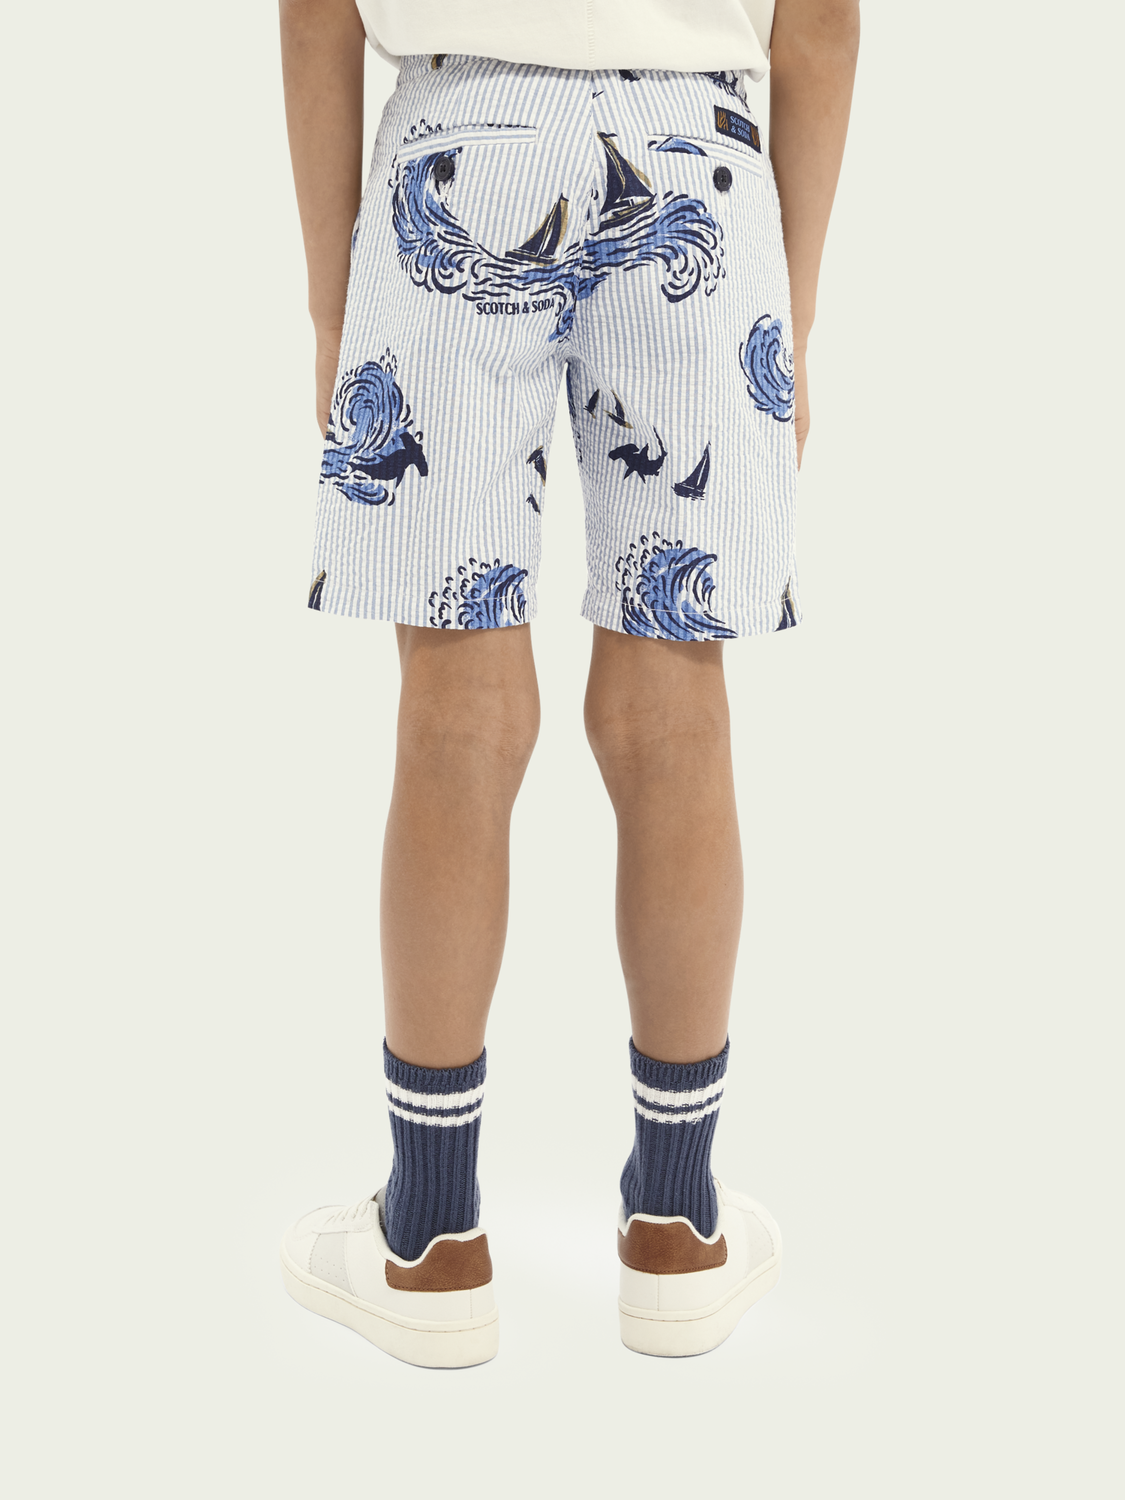 Kids Cotton printed shorts